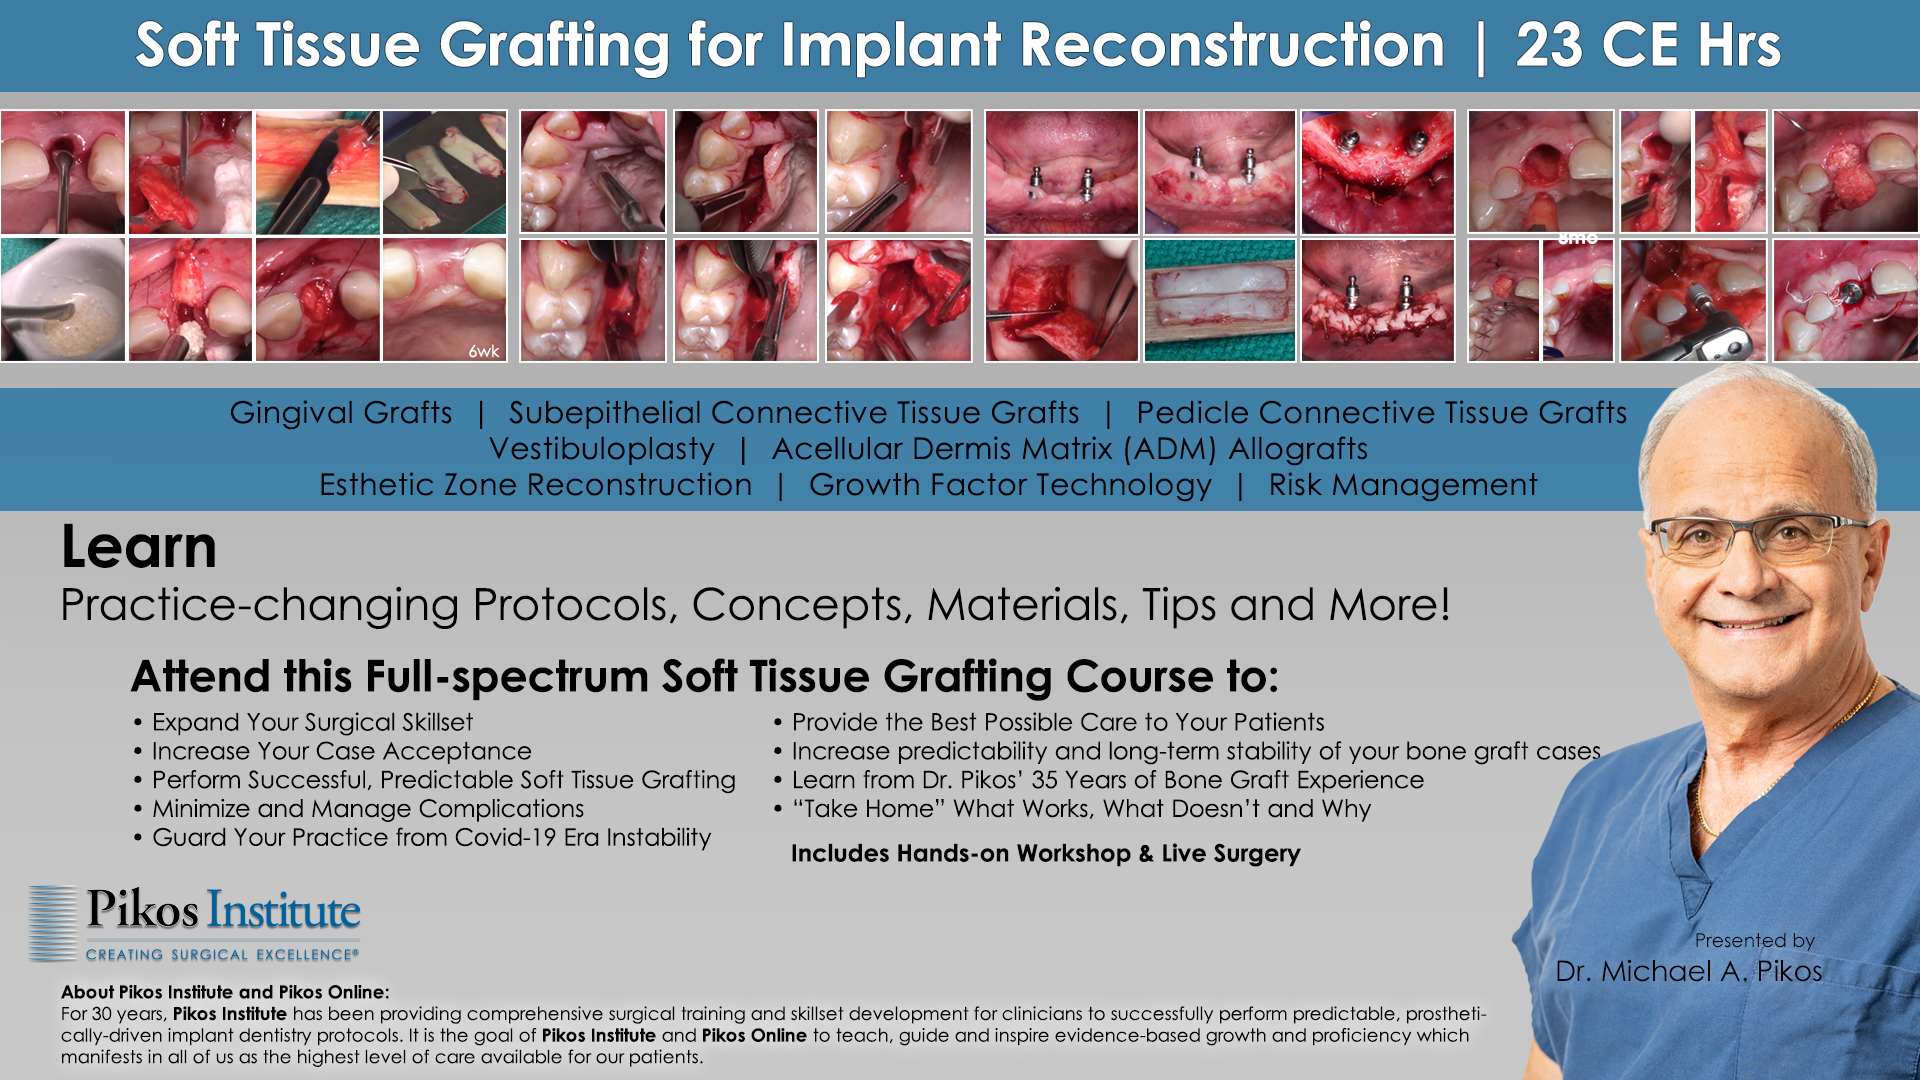 Contemporary Soft Tissue Grafting for Implant Reconstruction